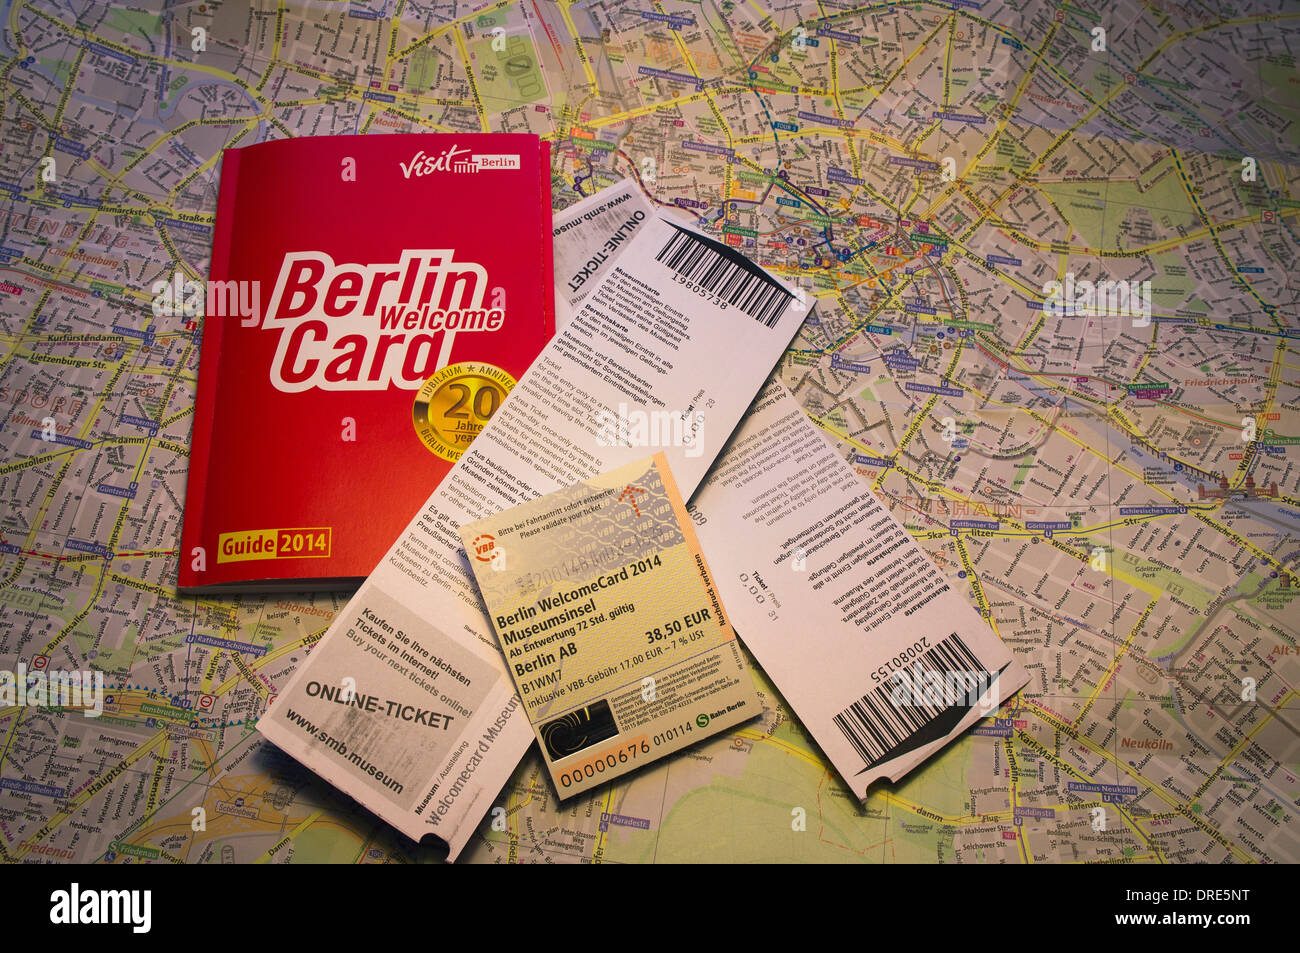 Berlin Berlin Welcome Card Welcomecard Map Ticket Voucher Stock